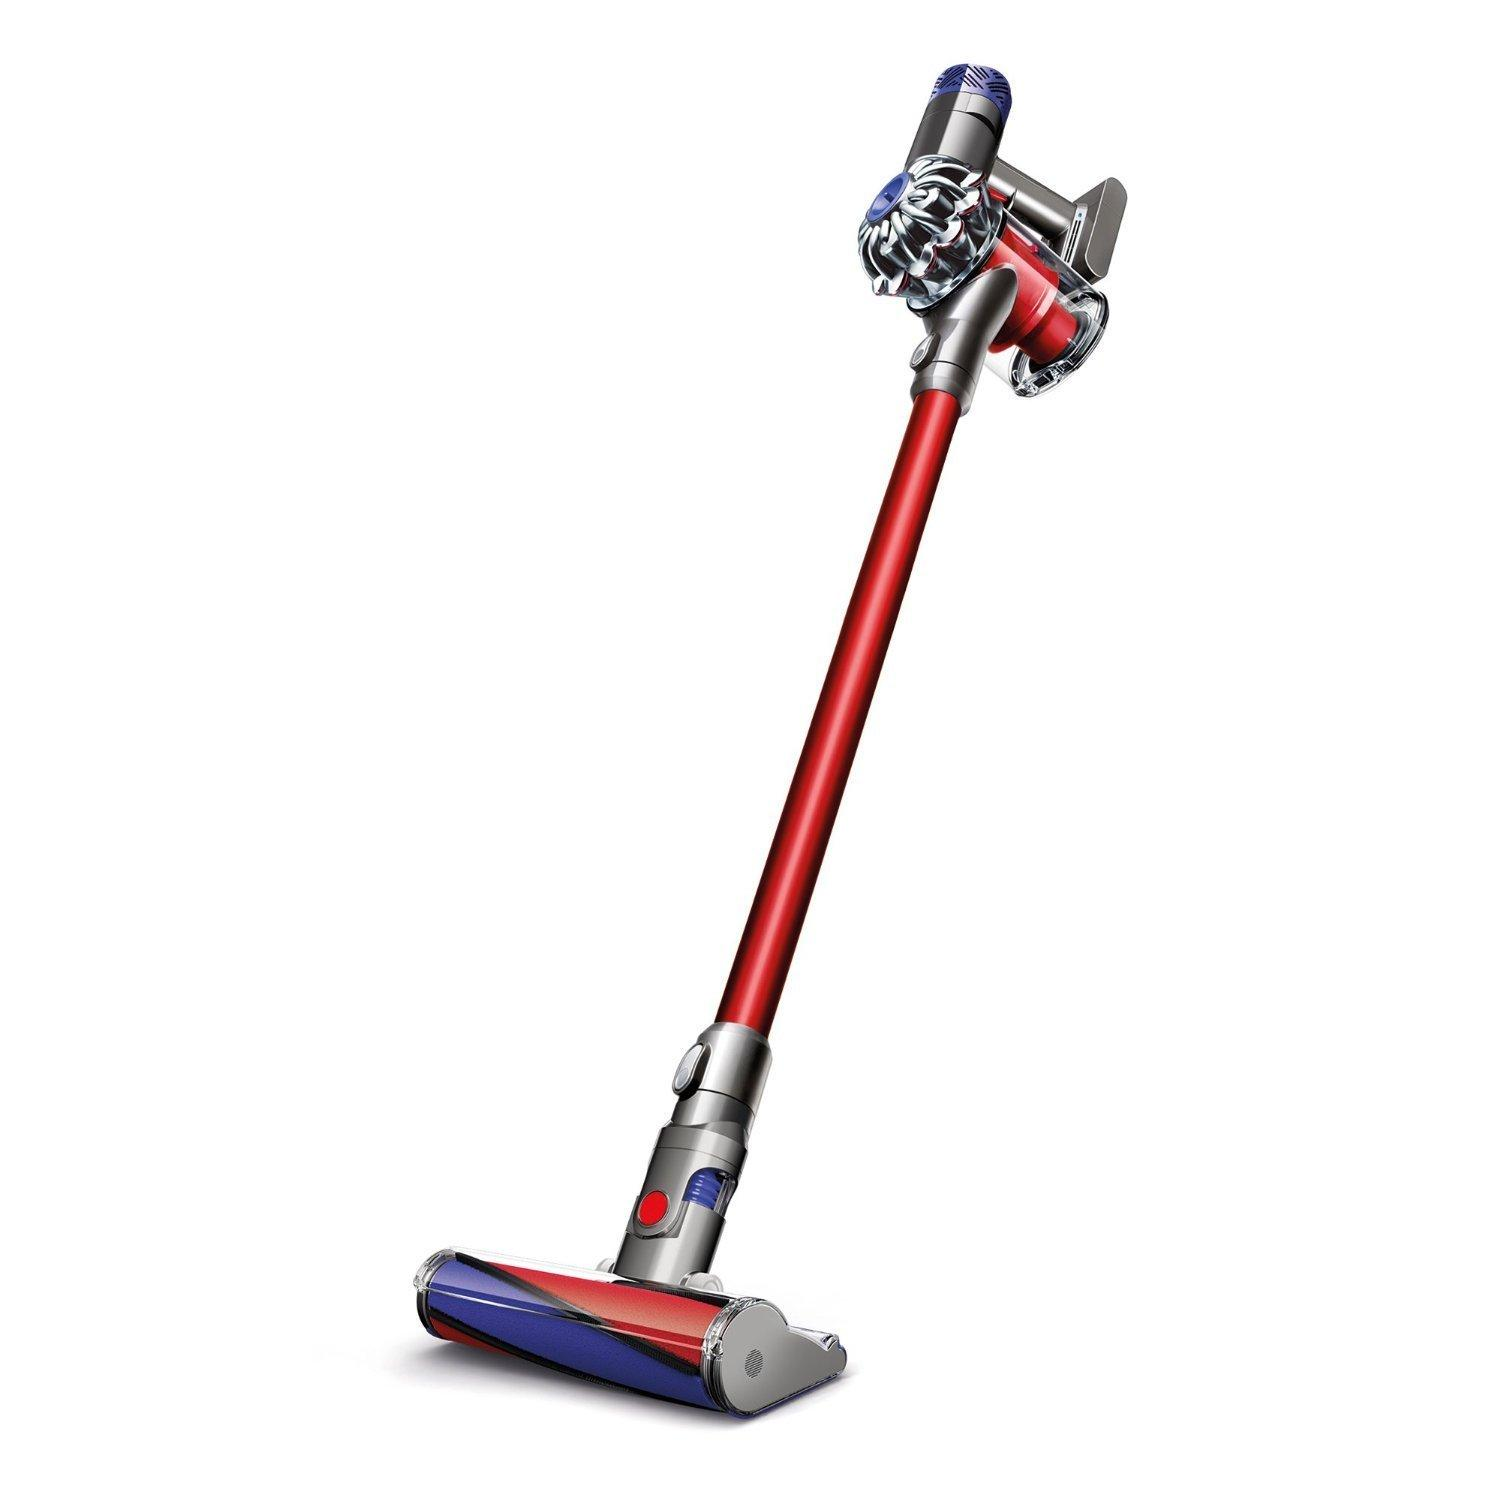 Dyson V6 Absolute Cord-Free Vacuum (Certified Refurbished)